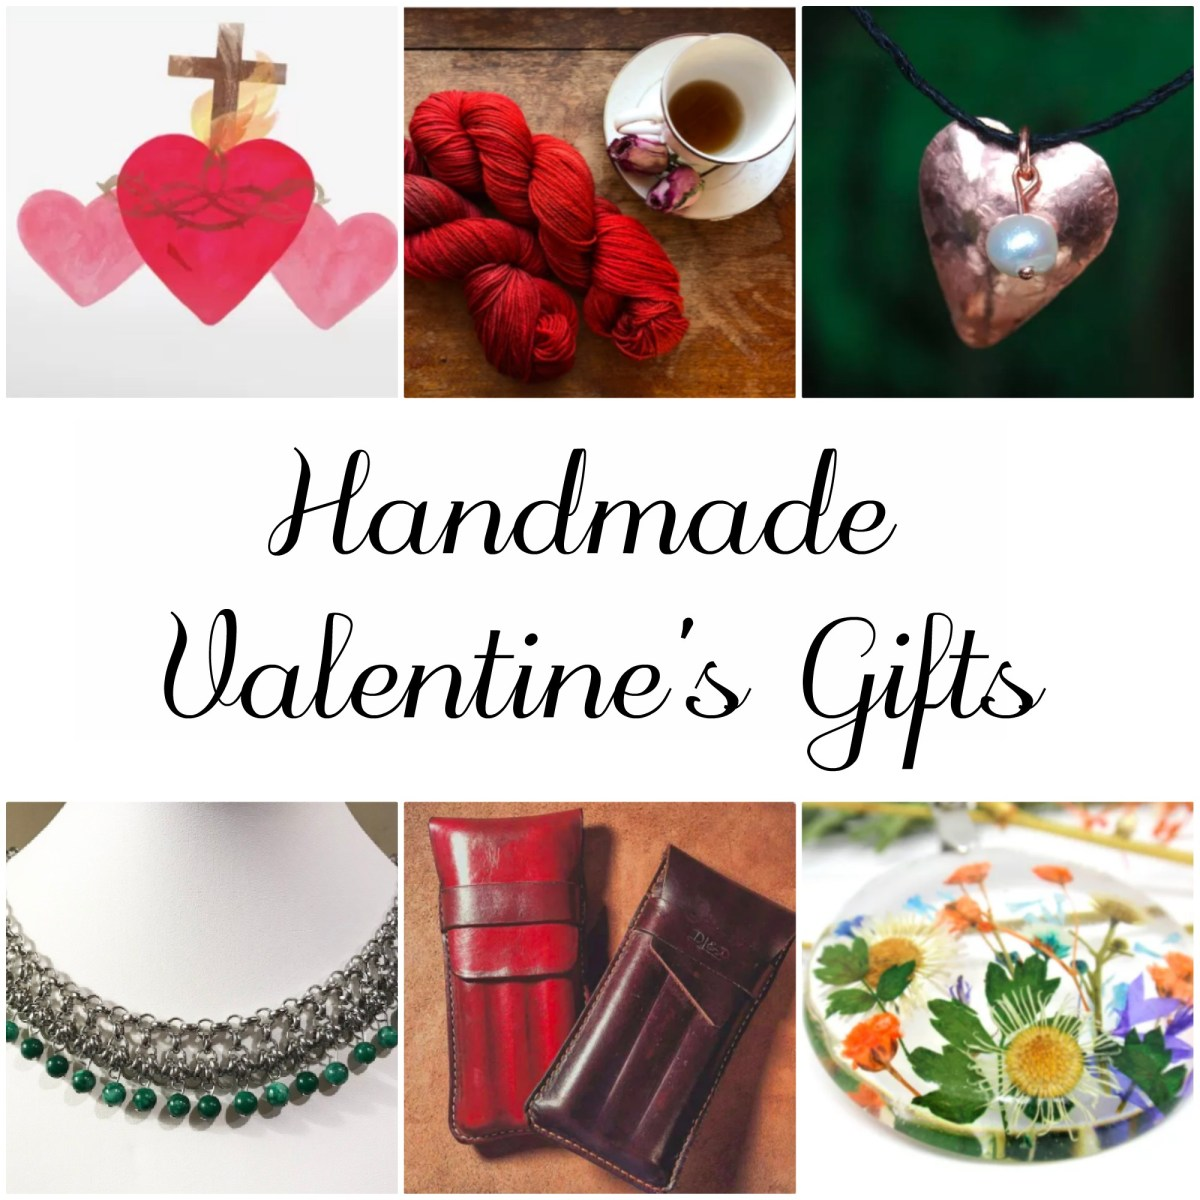 Handmade Gift Guide for Valentine's Day